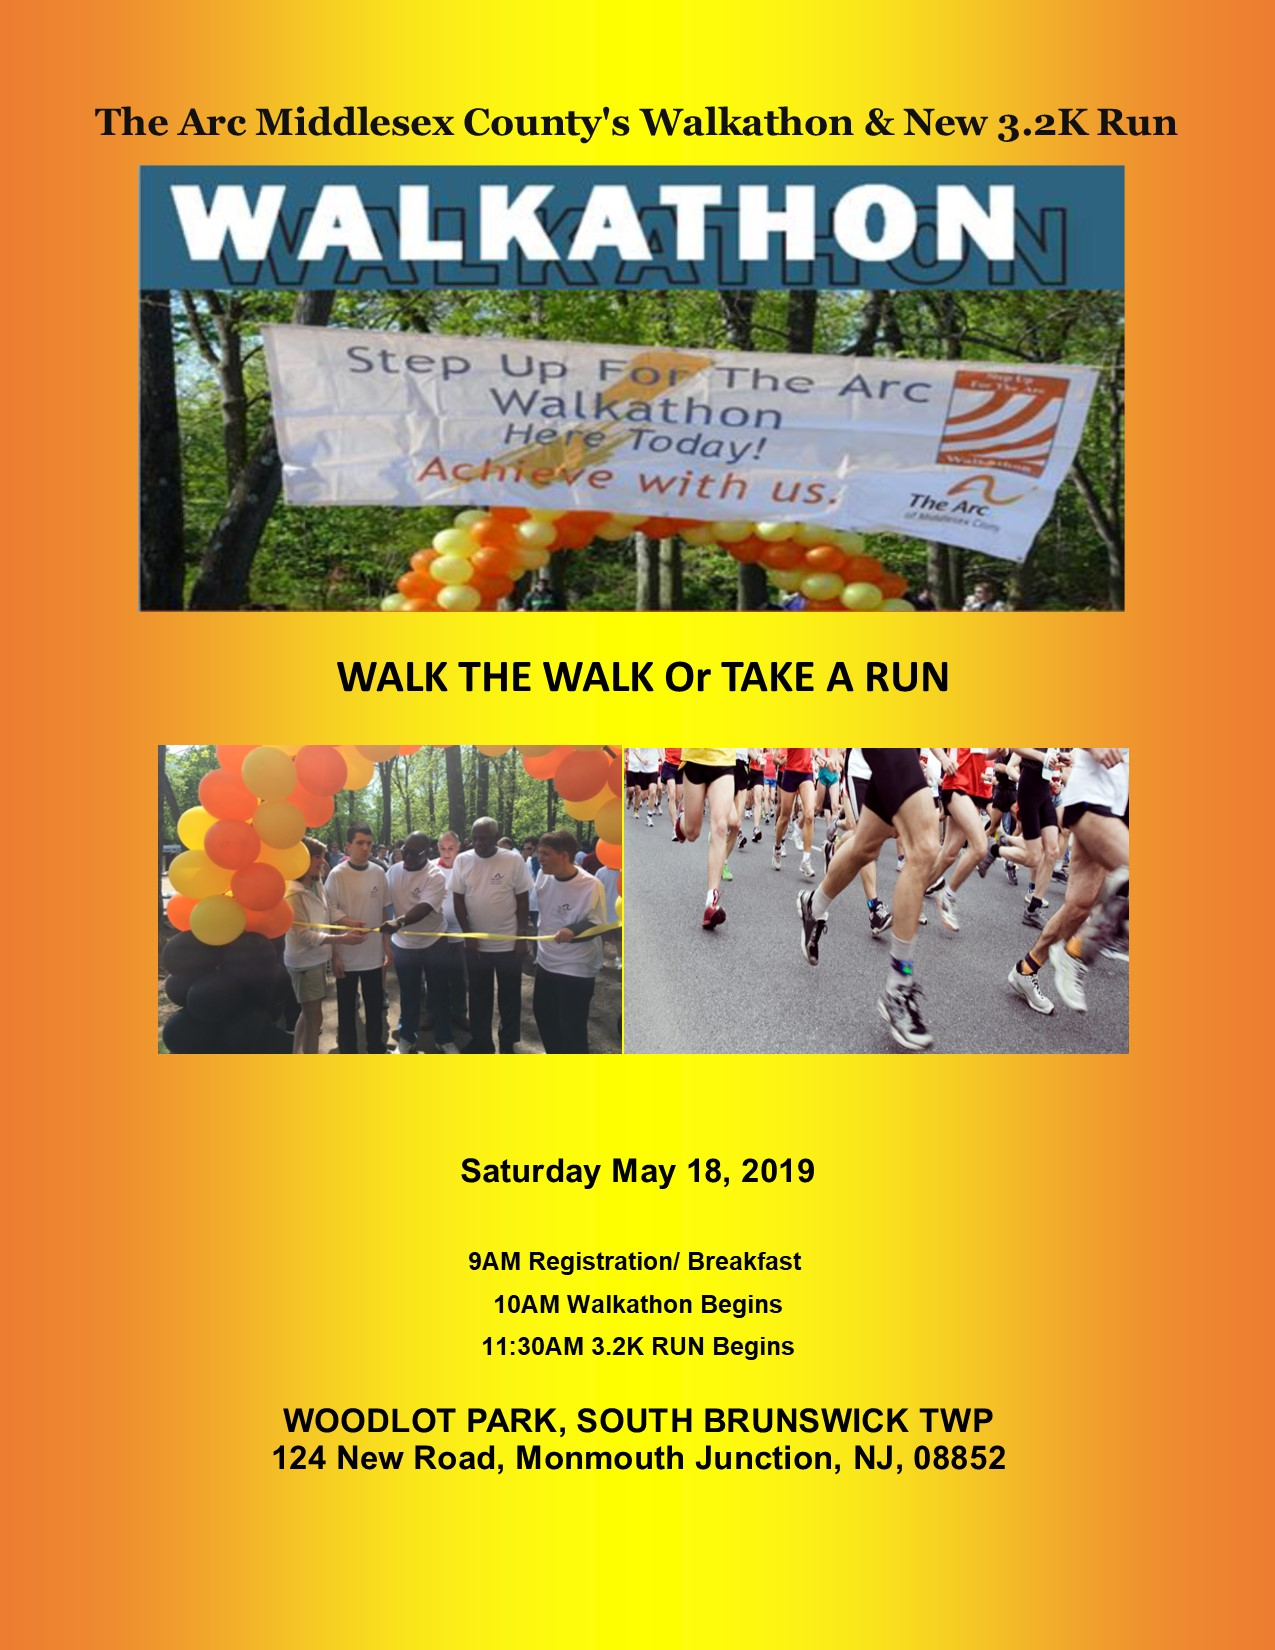 The Arc Middlesex County's 2019 Walkathon & New 3.2K Run